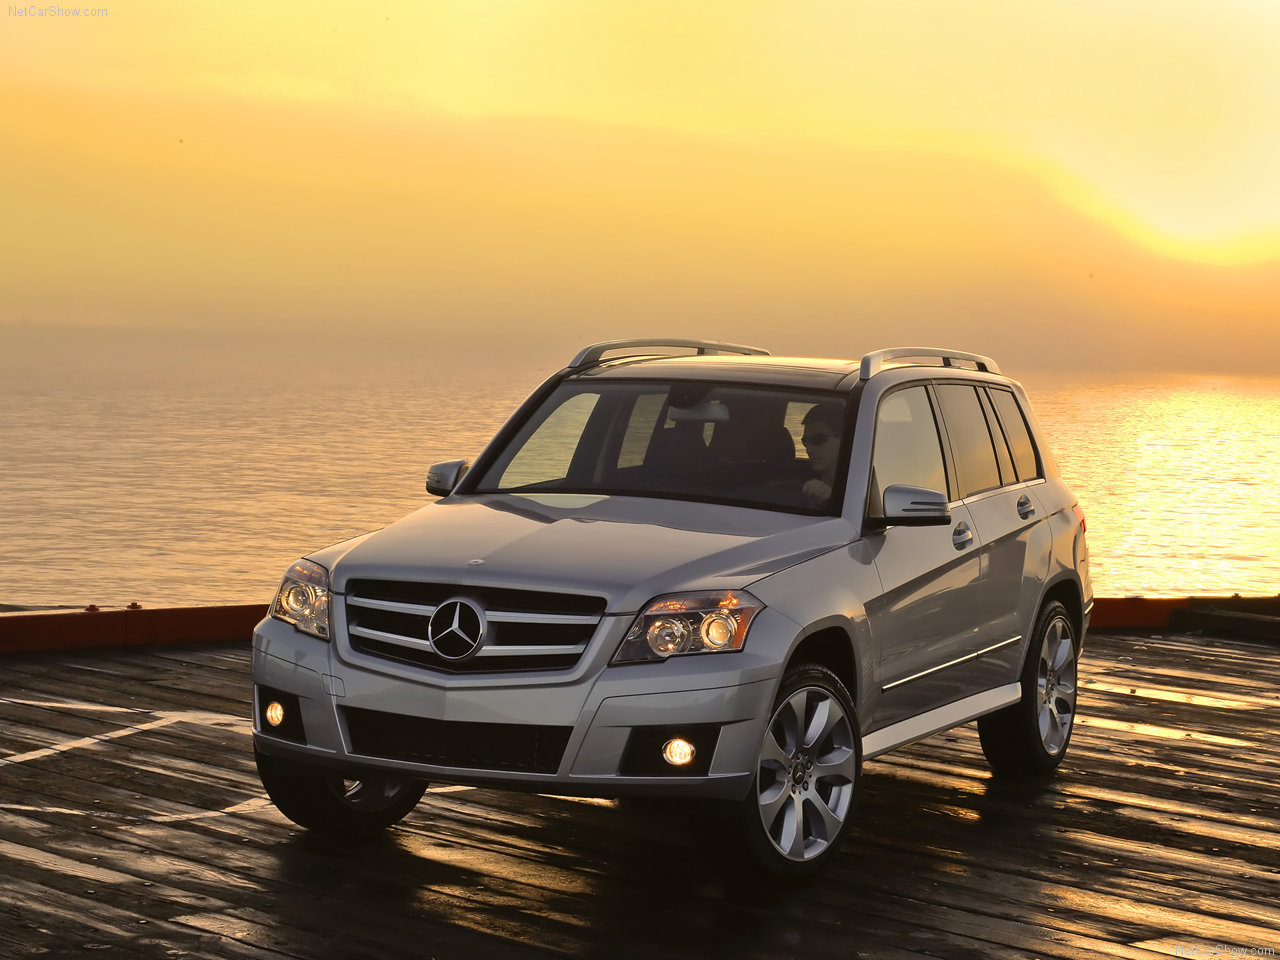 2010 mercedes benz glk 350 4matic mercedes benz cars